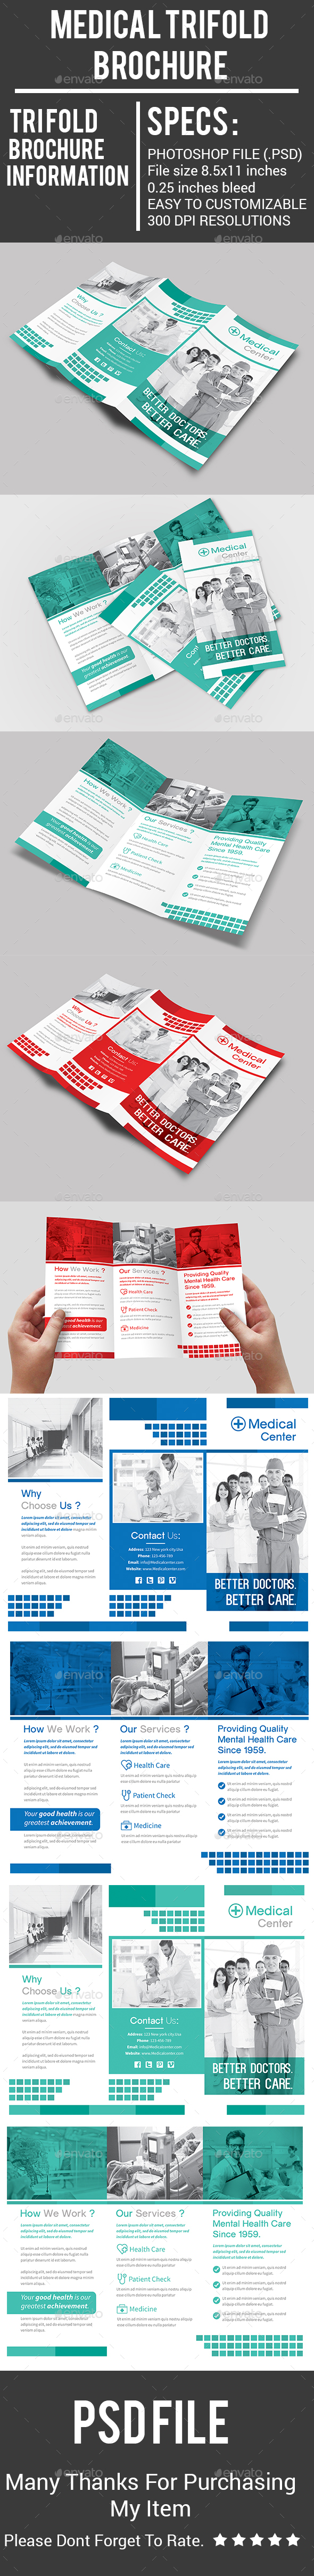 Medical Trifold Brochure - Corporate Brochures